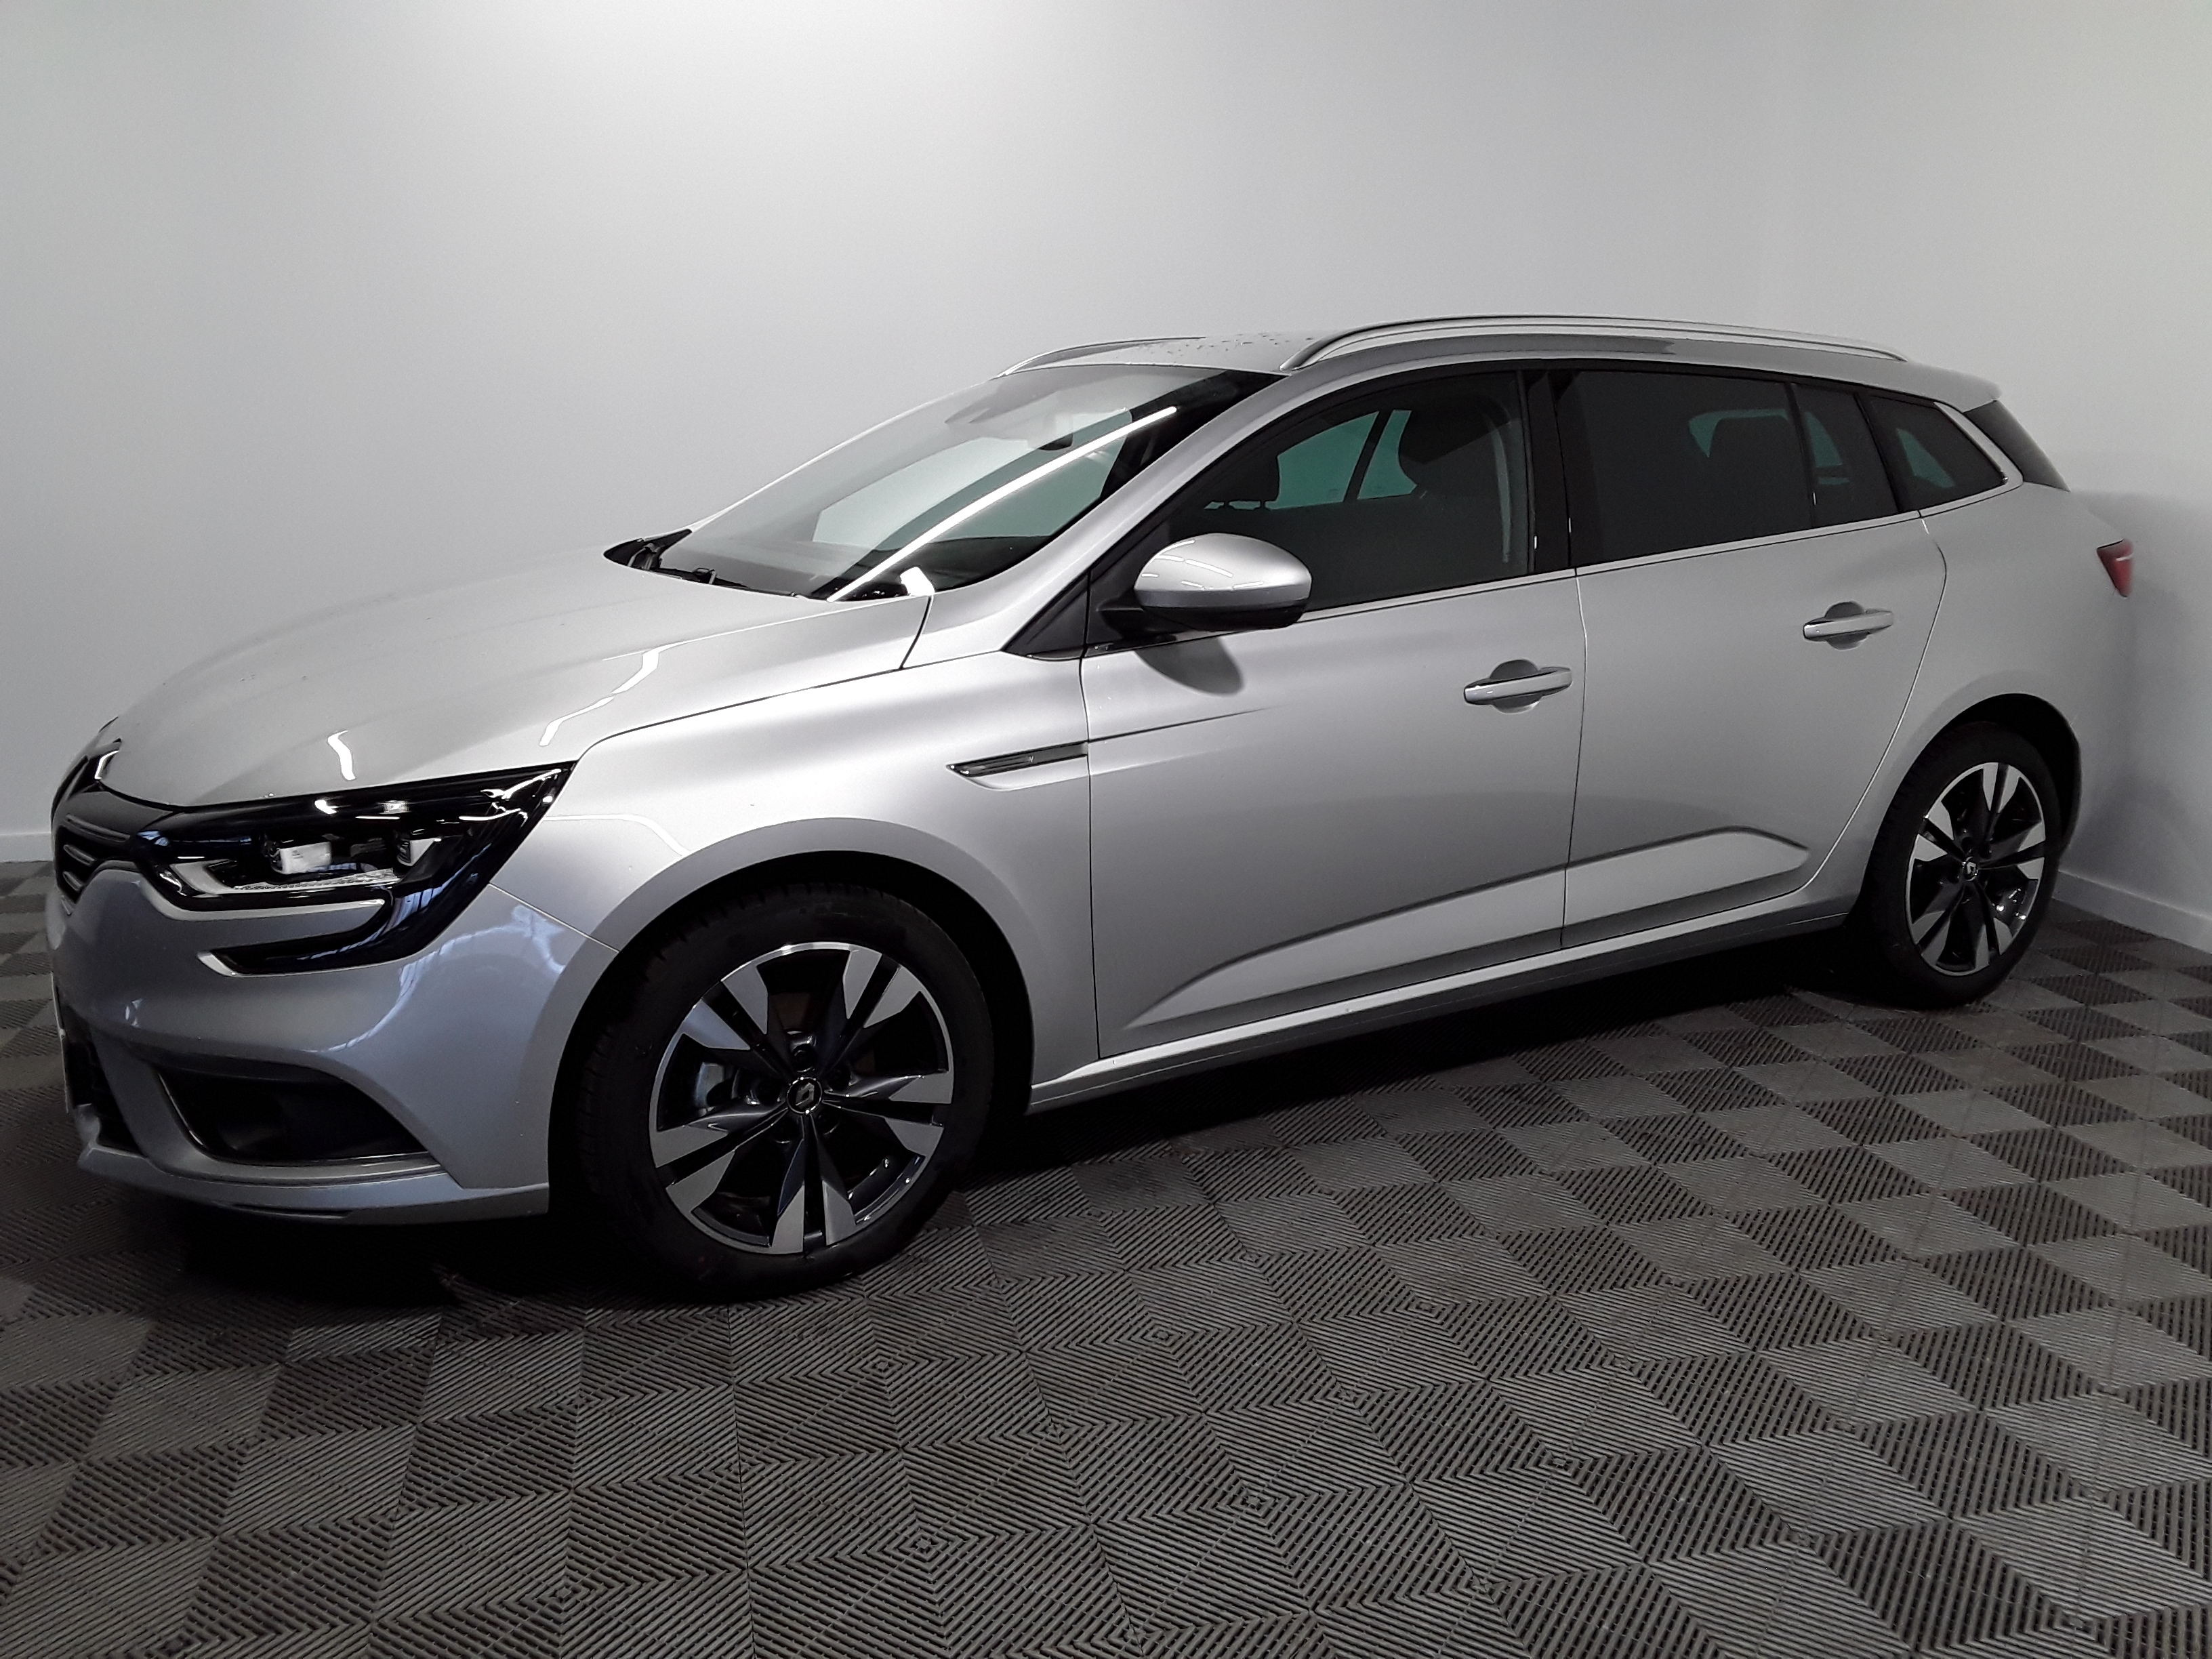 RENAULT MEGANE IV ESTATE